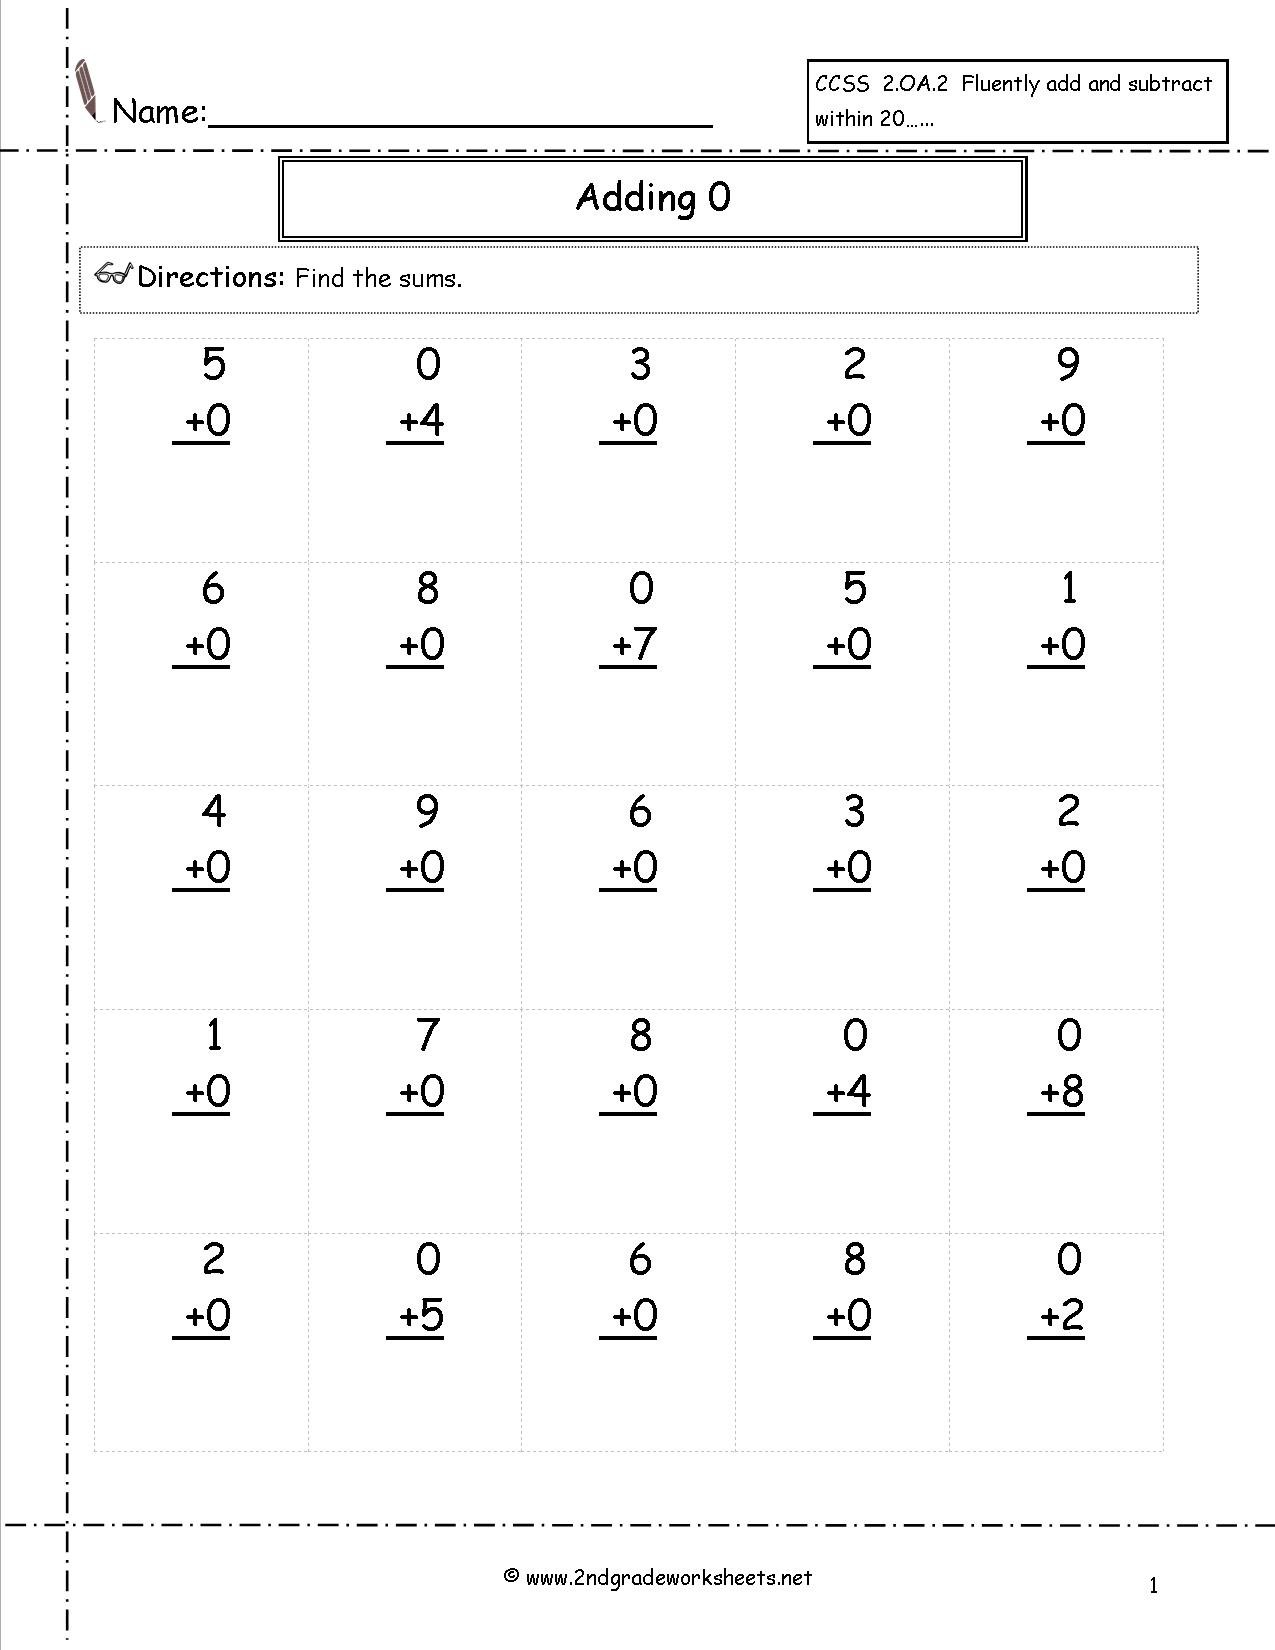 Adding Math Sheets To Print With A Zero The Best Worksheets Image